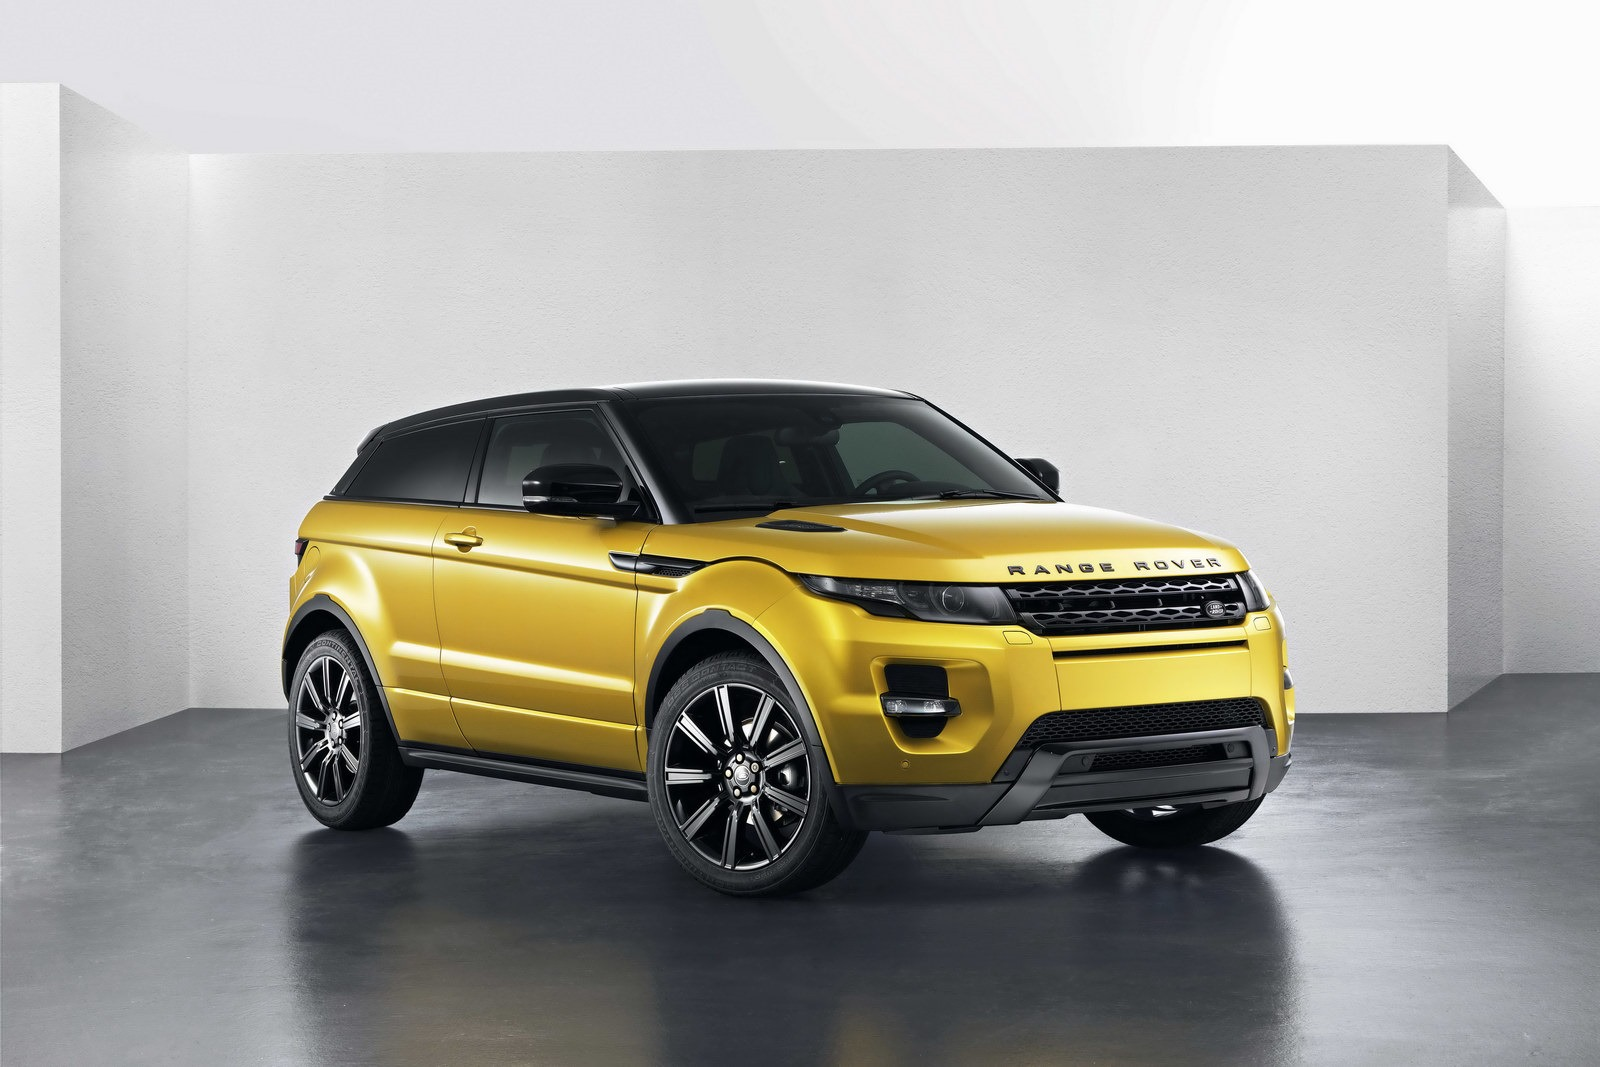 Land Rover Kills Three-Door Range Rover Evoque In U.S